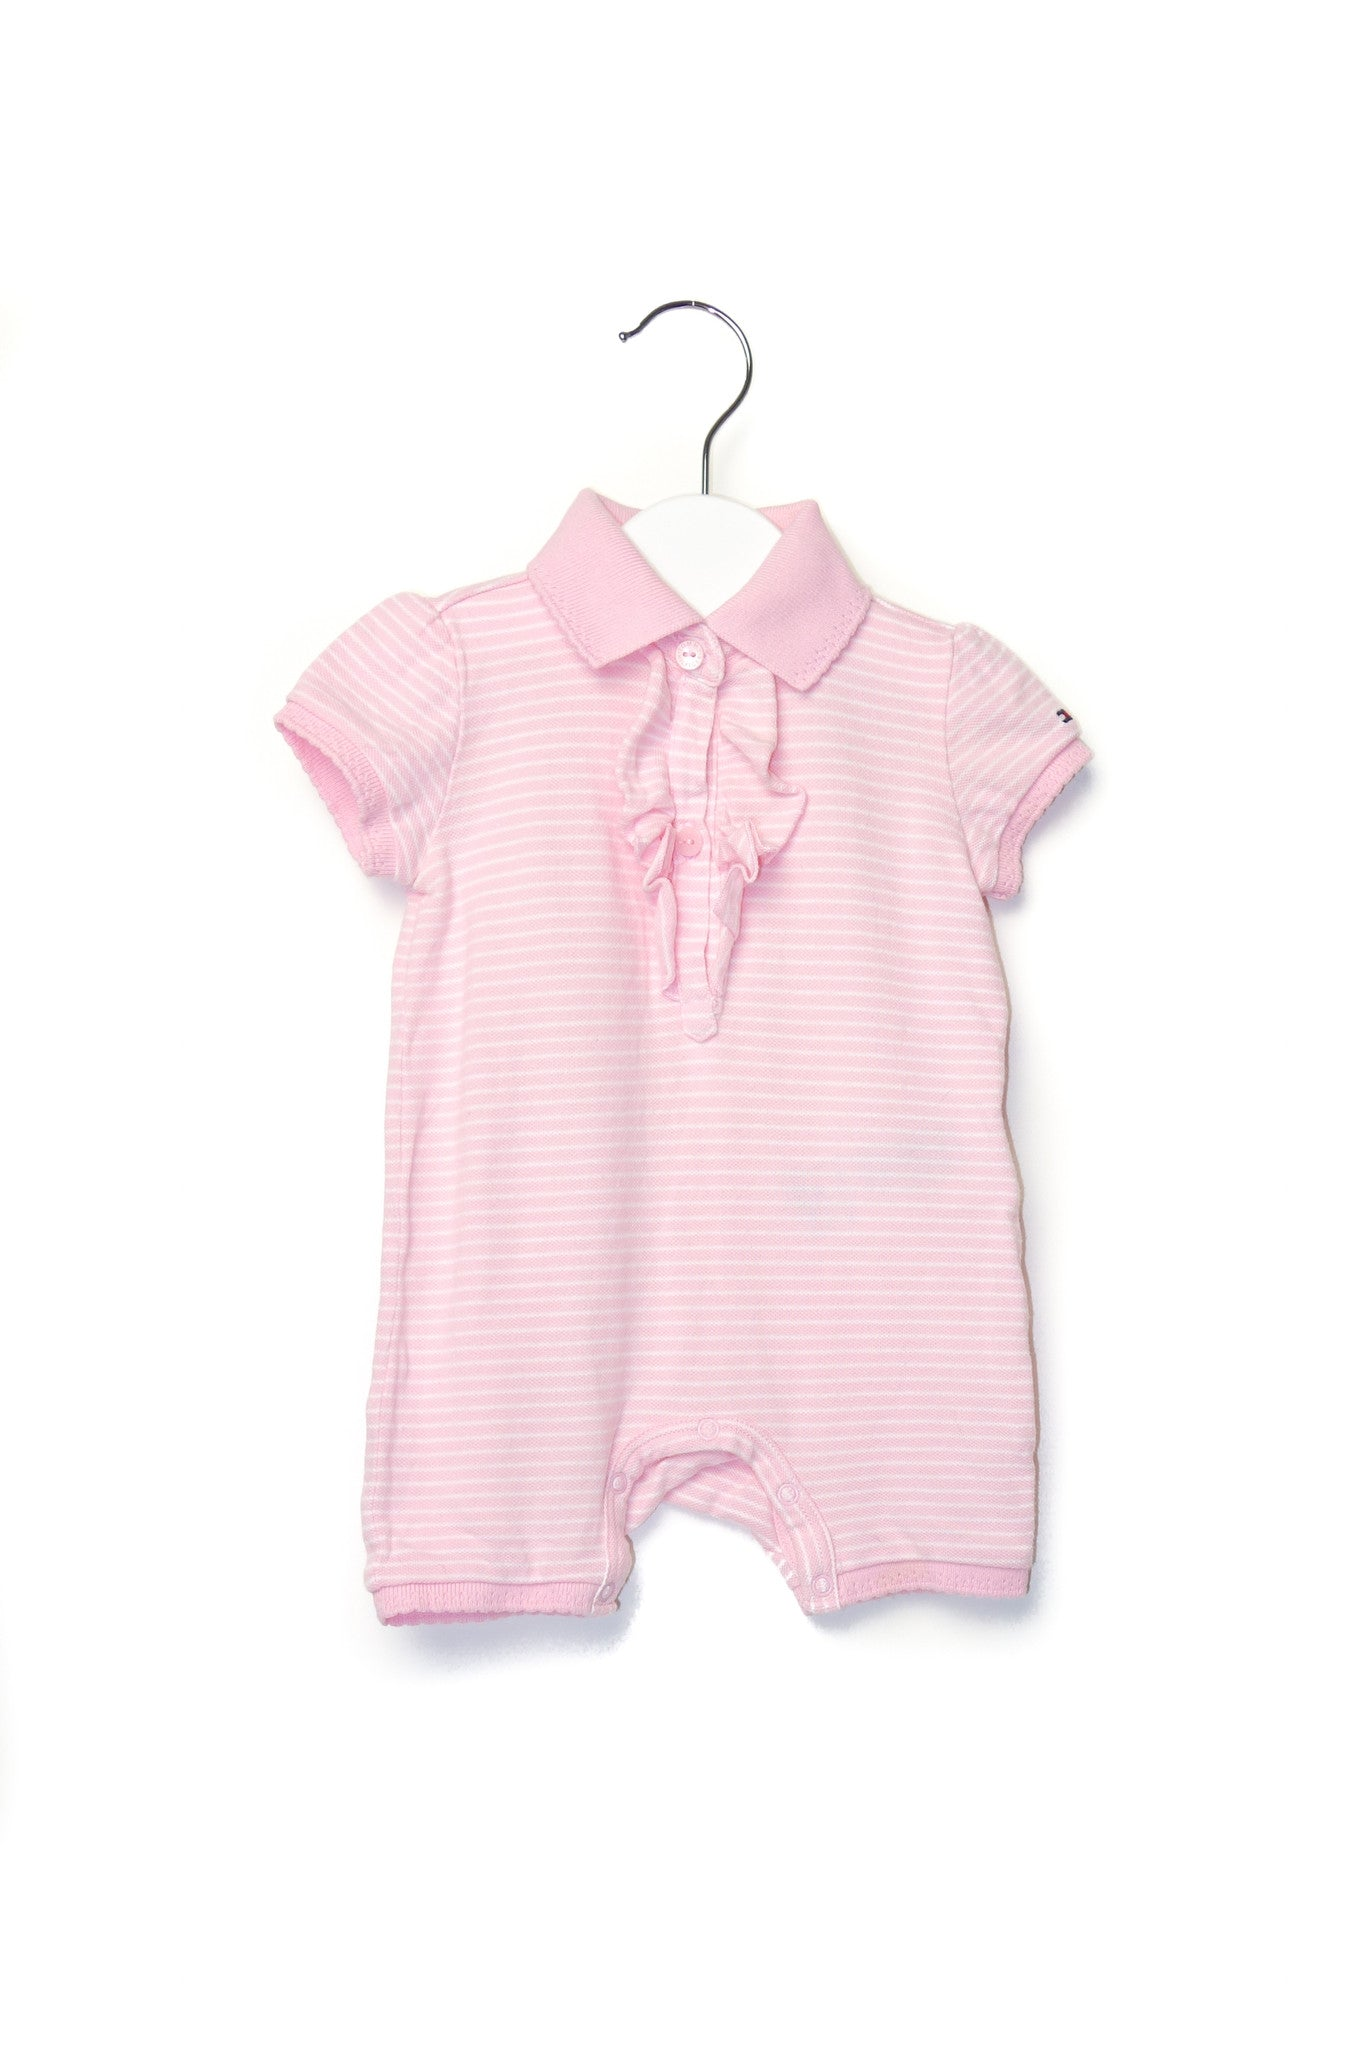 10001619 Tommy Hilfiger Baby~Romper NB at Retykle